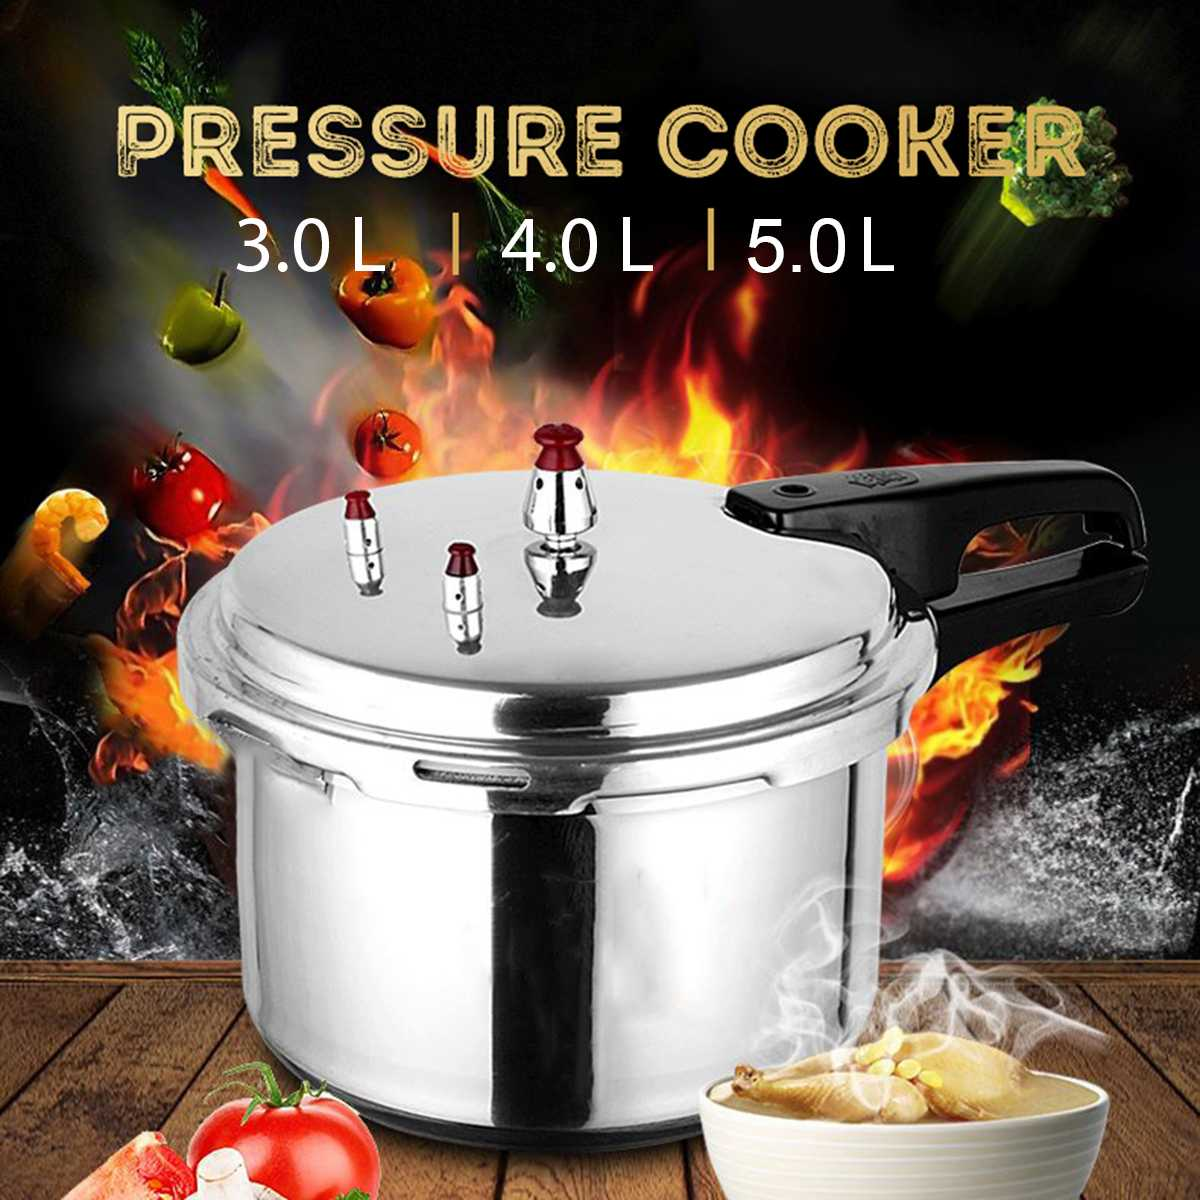 Kitchen Pressure Cooker Cookware Soup Meats pot 18/20/22cm Gas Stove/Open Fire Pressure Cooker Outdoor Camping Cook Tool Steamer 1